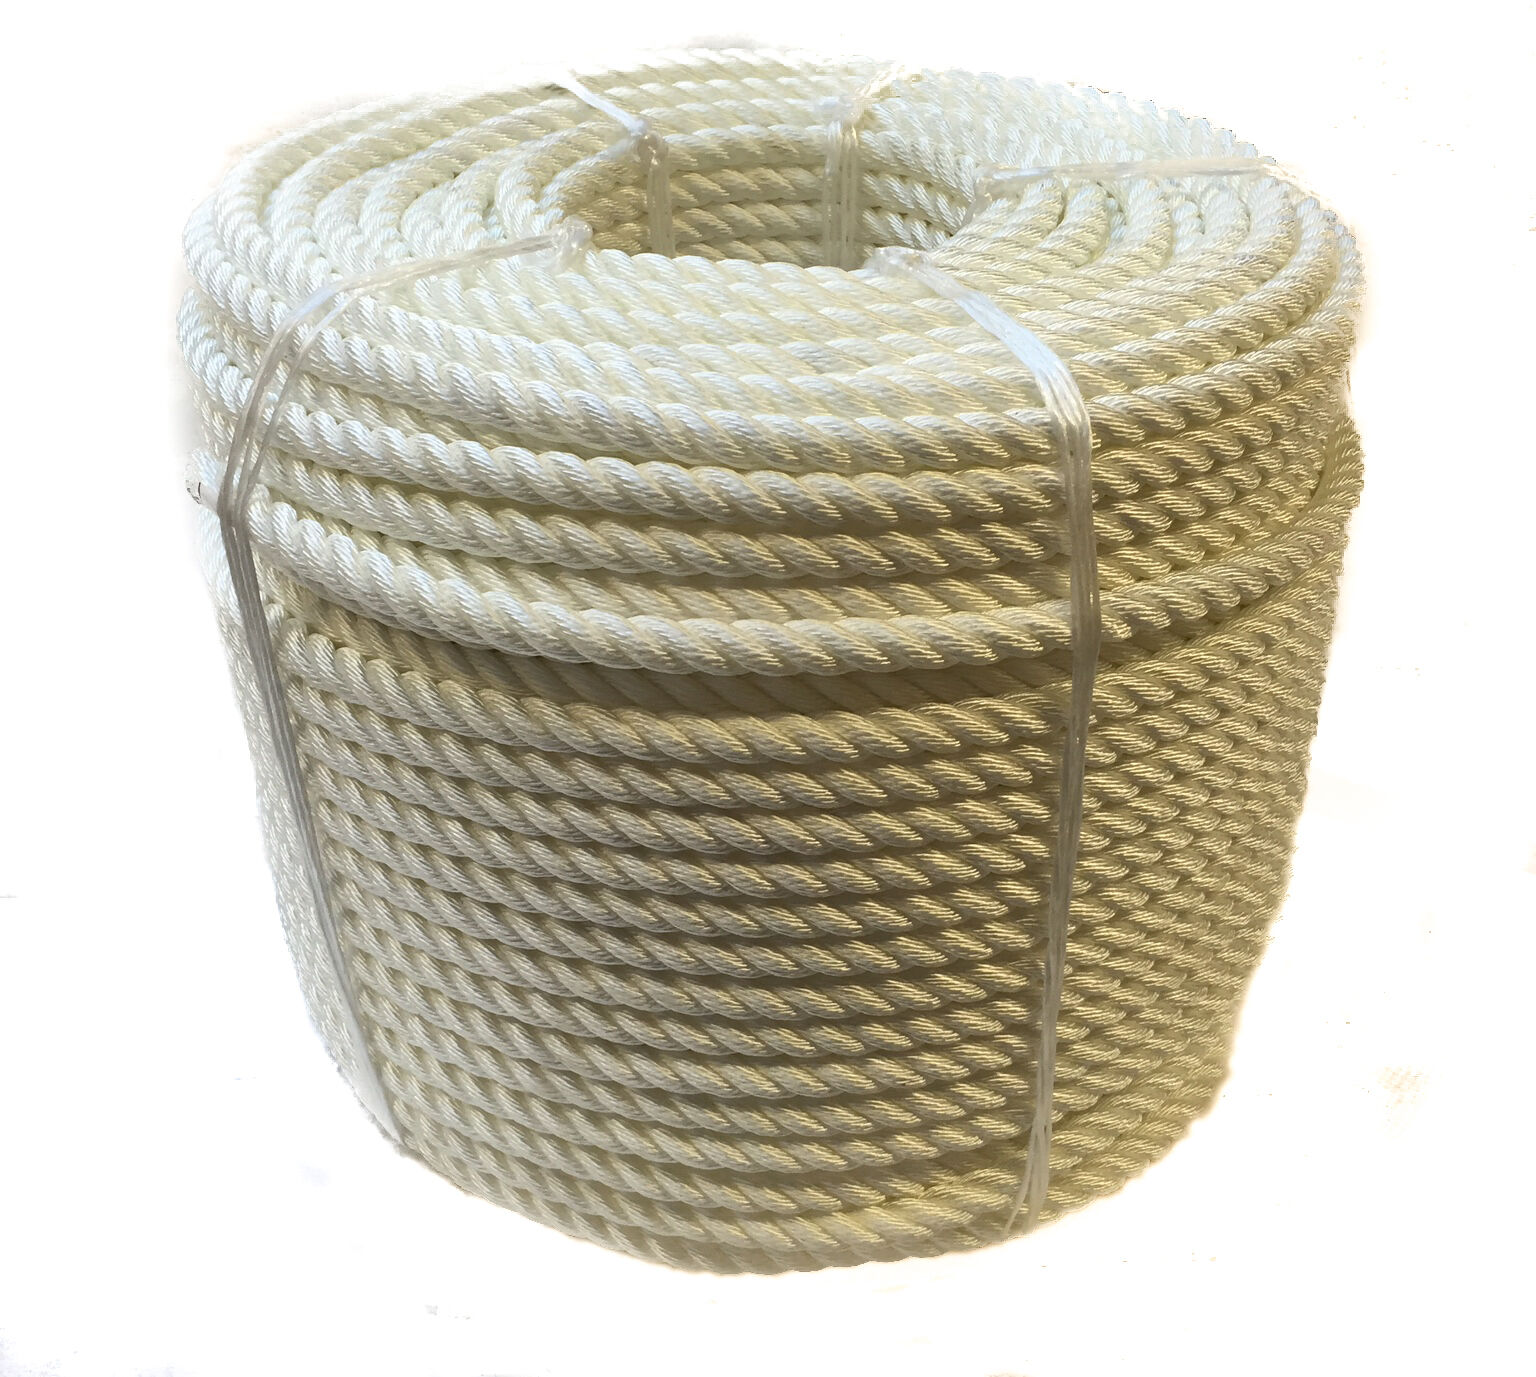 8mm White Nylon Rope, Anchor Boat Mooring Yacht, 3 Strand, moorings, towing